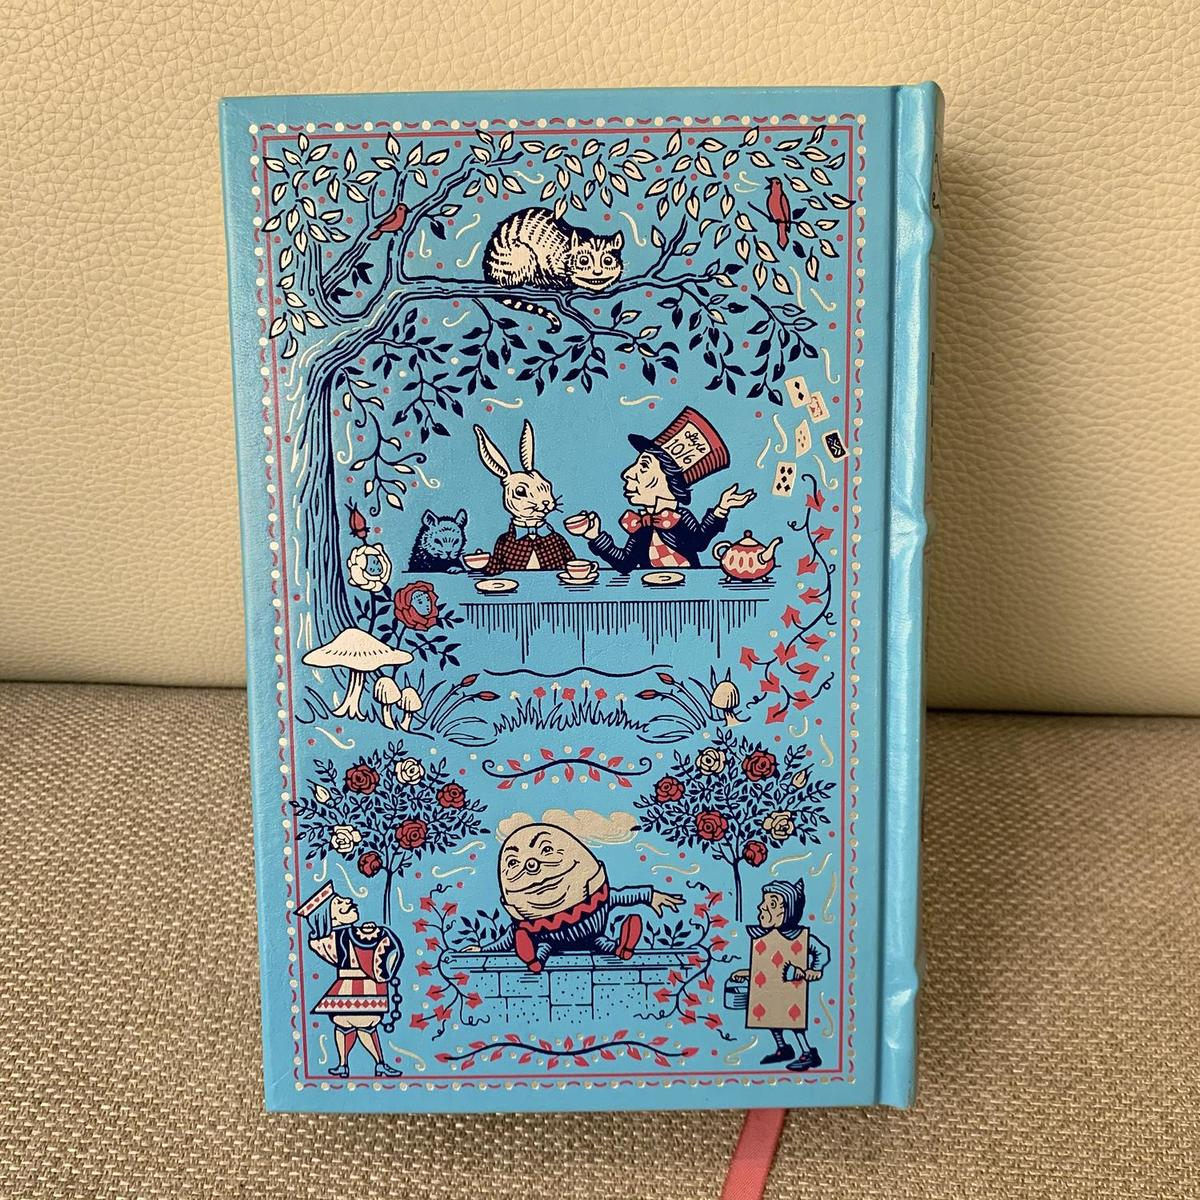 'ALICE'S ADVENTURES IN WONDERLAND & OTHER STORIES' by 'LEWIS CARROLL' (Barnes & Noble Edition)